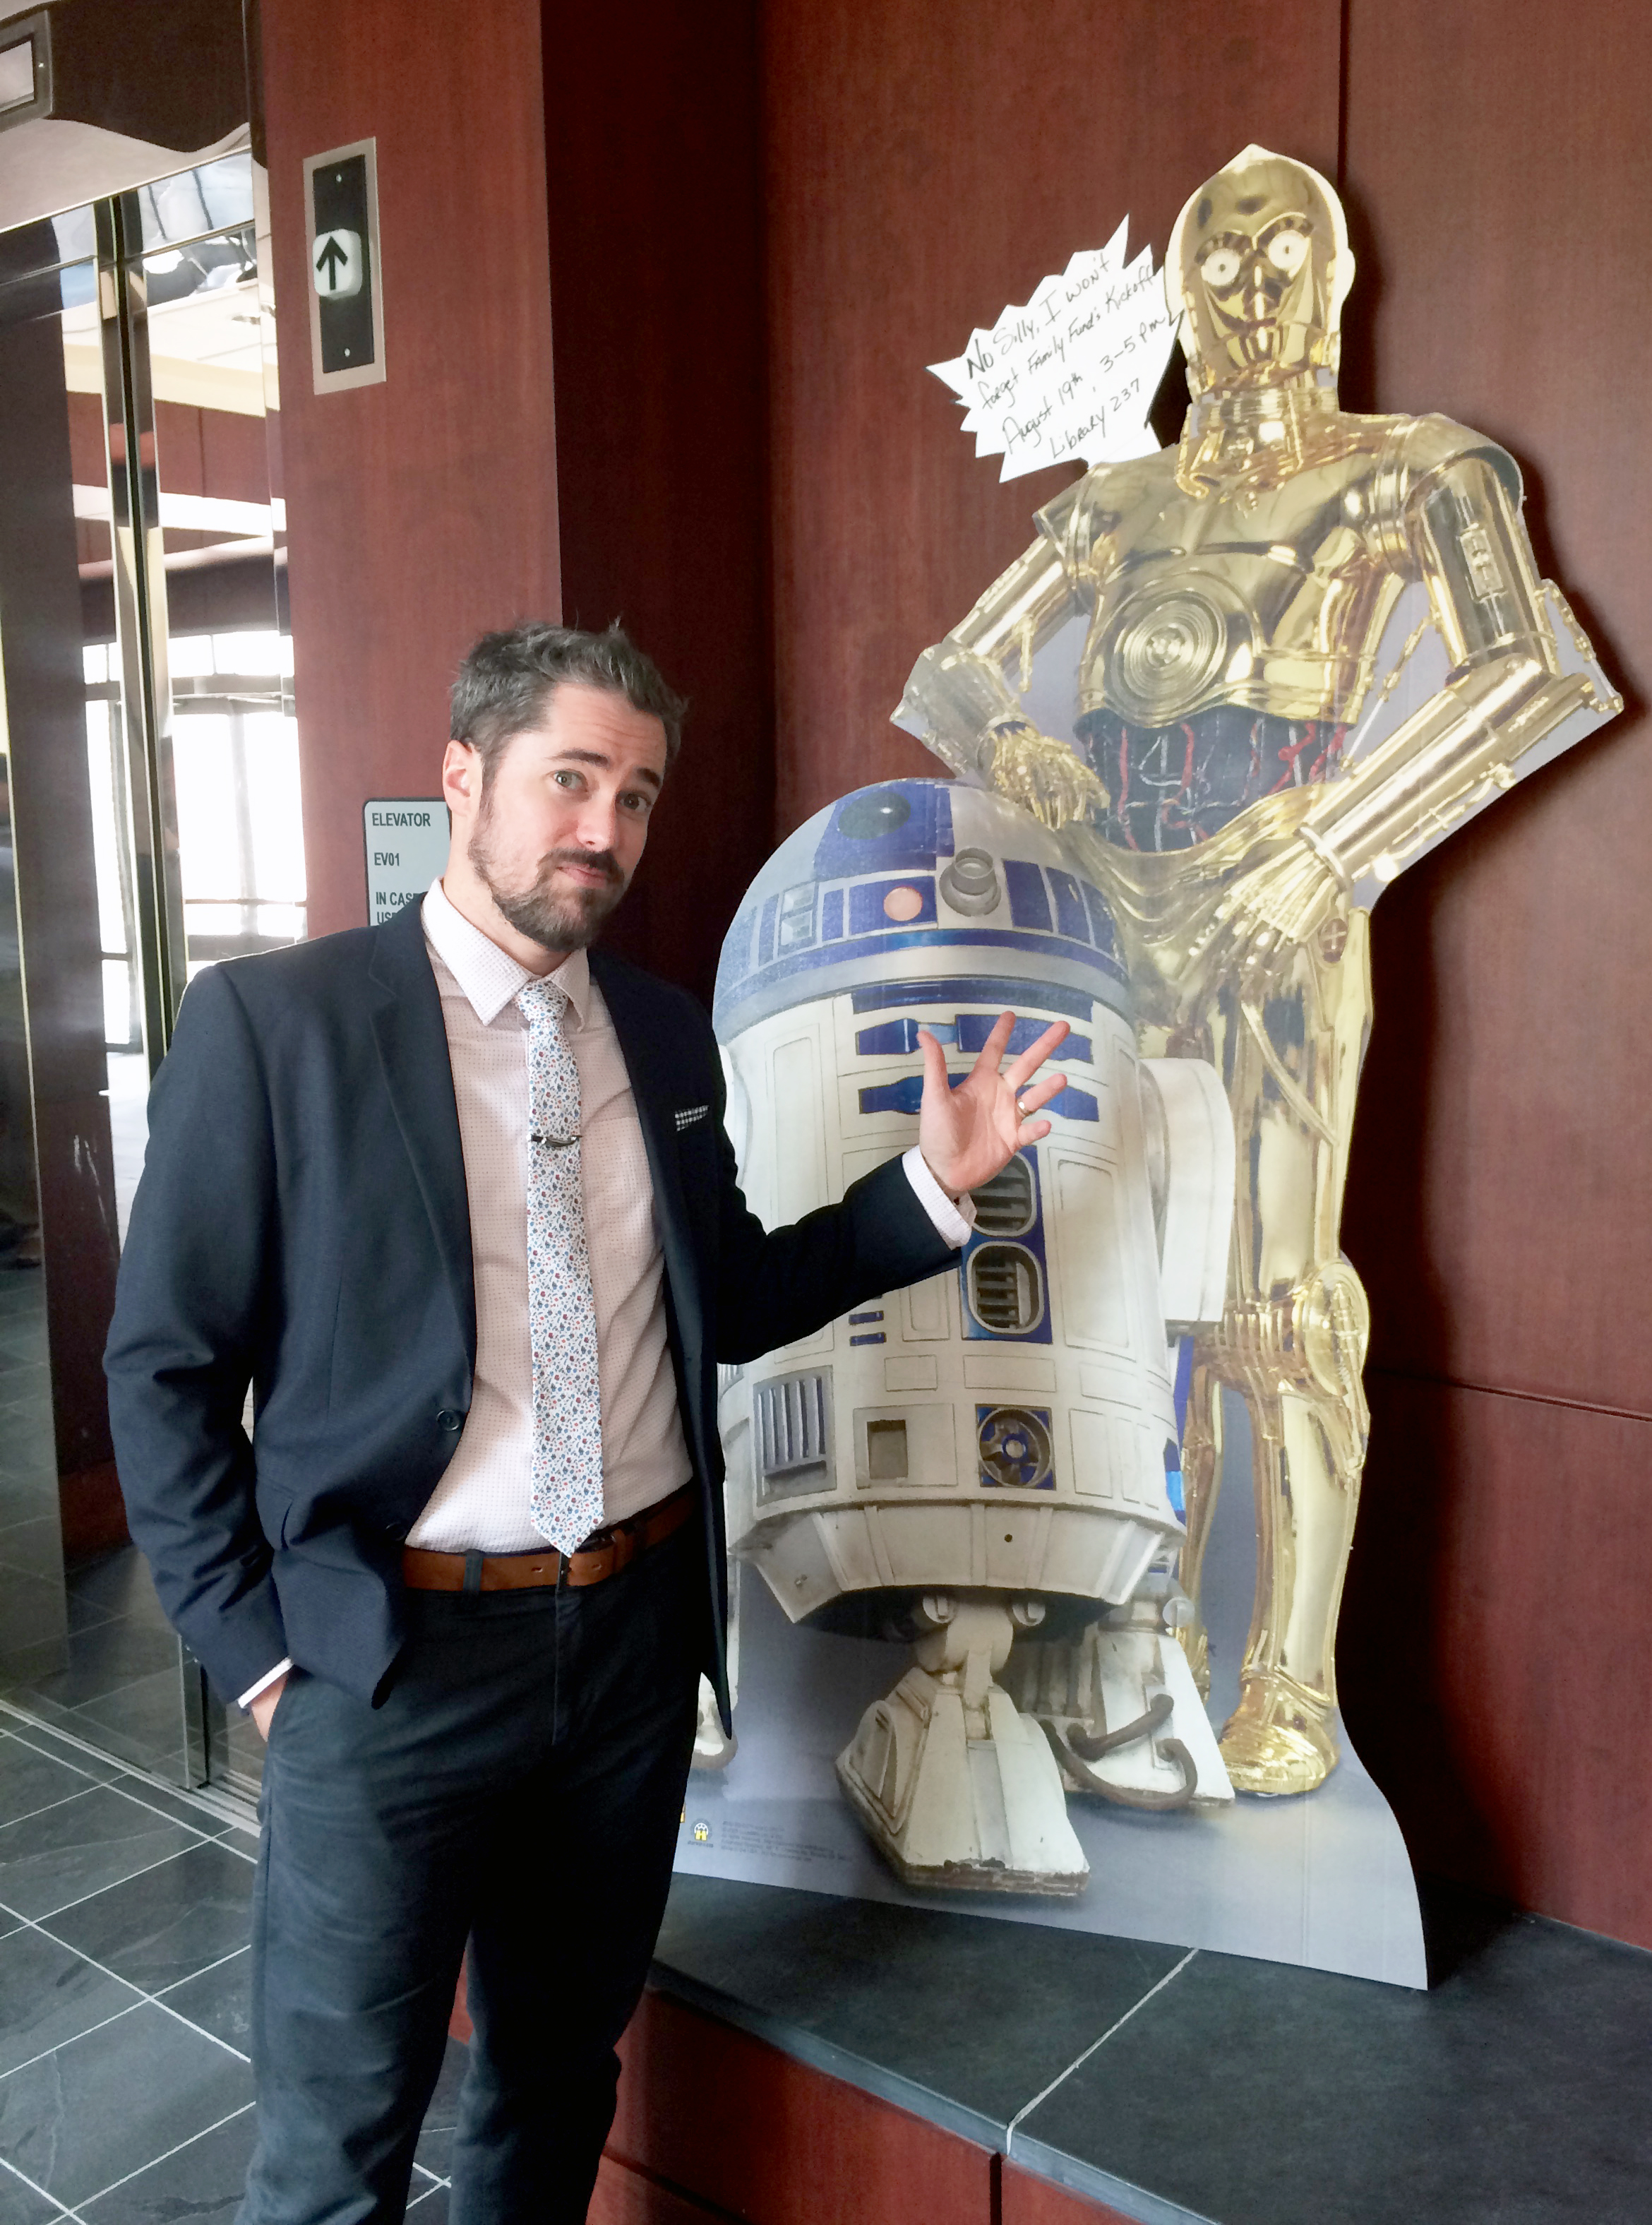 David Dewees, R2D2, C3PO (From left to right)